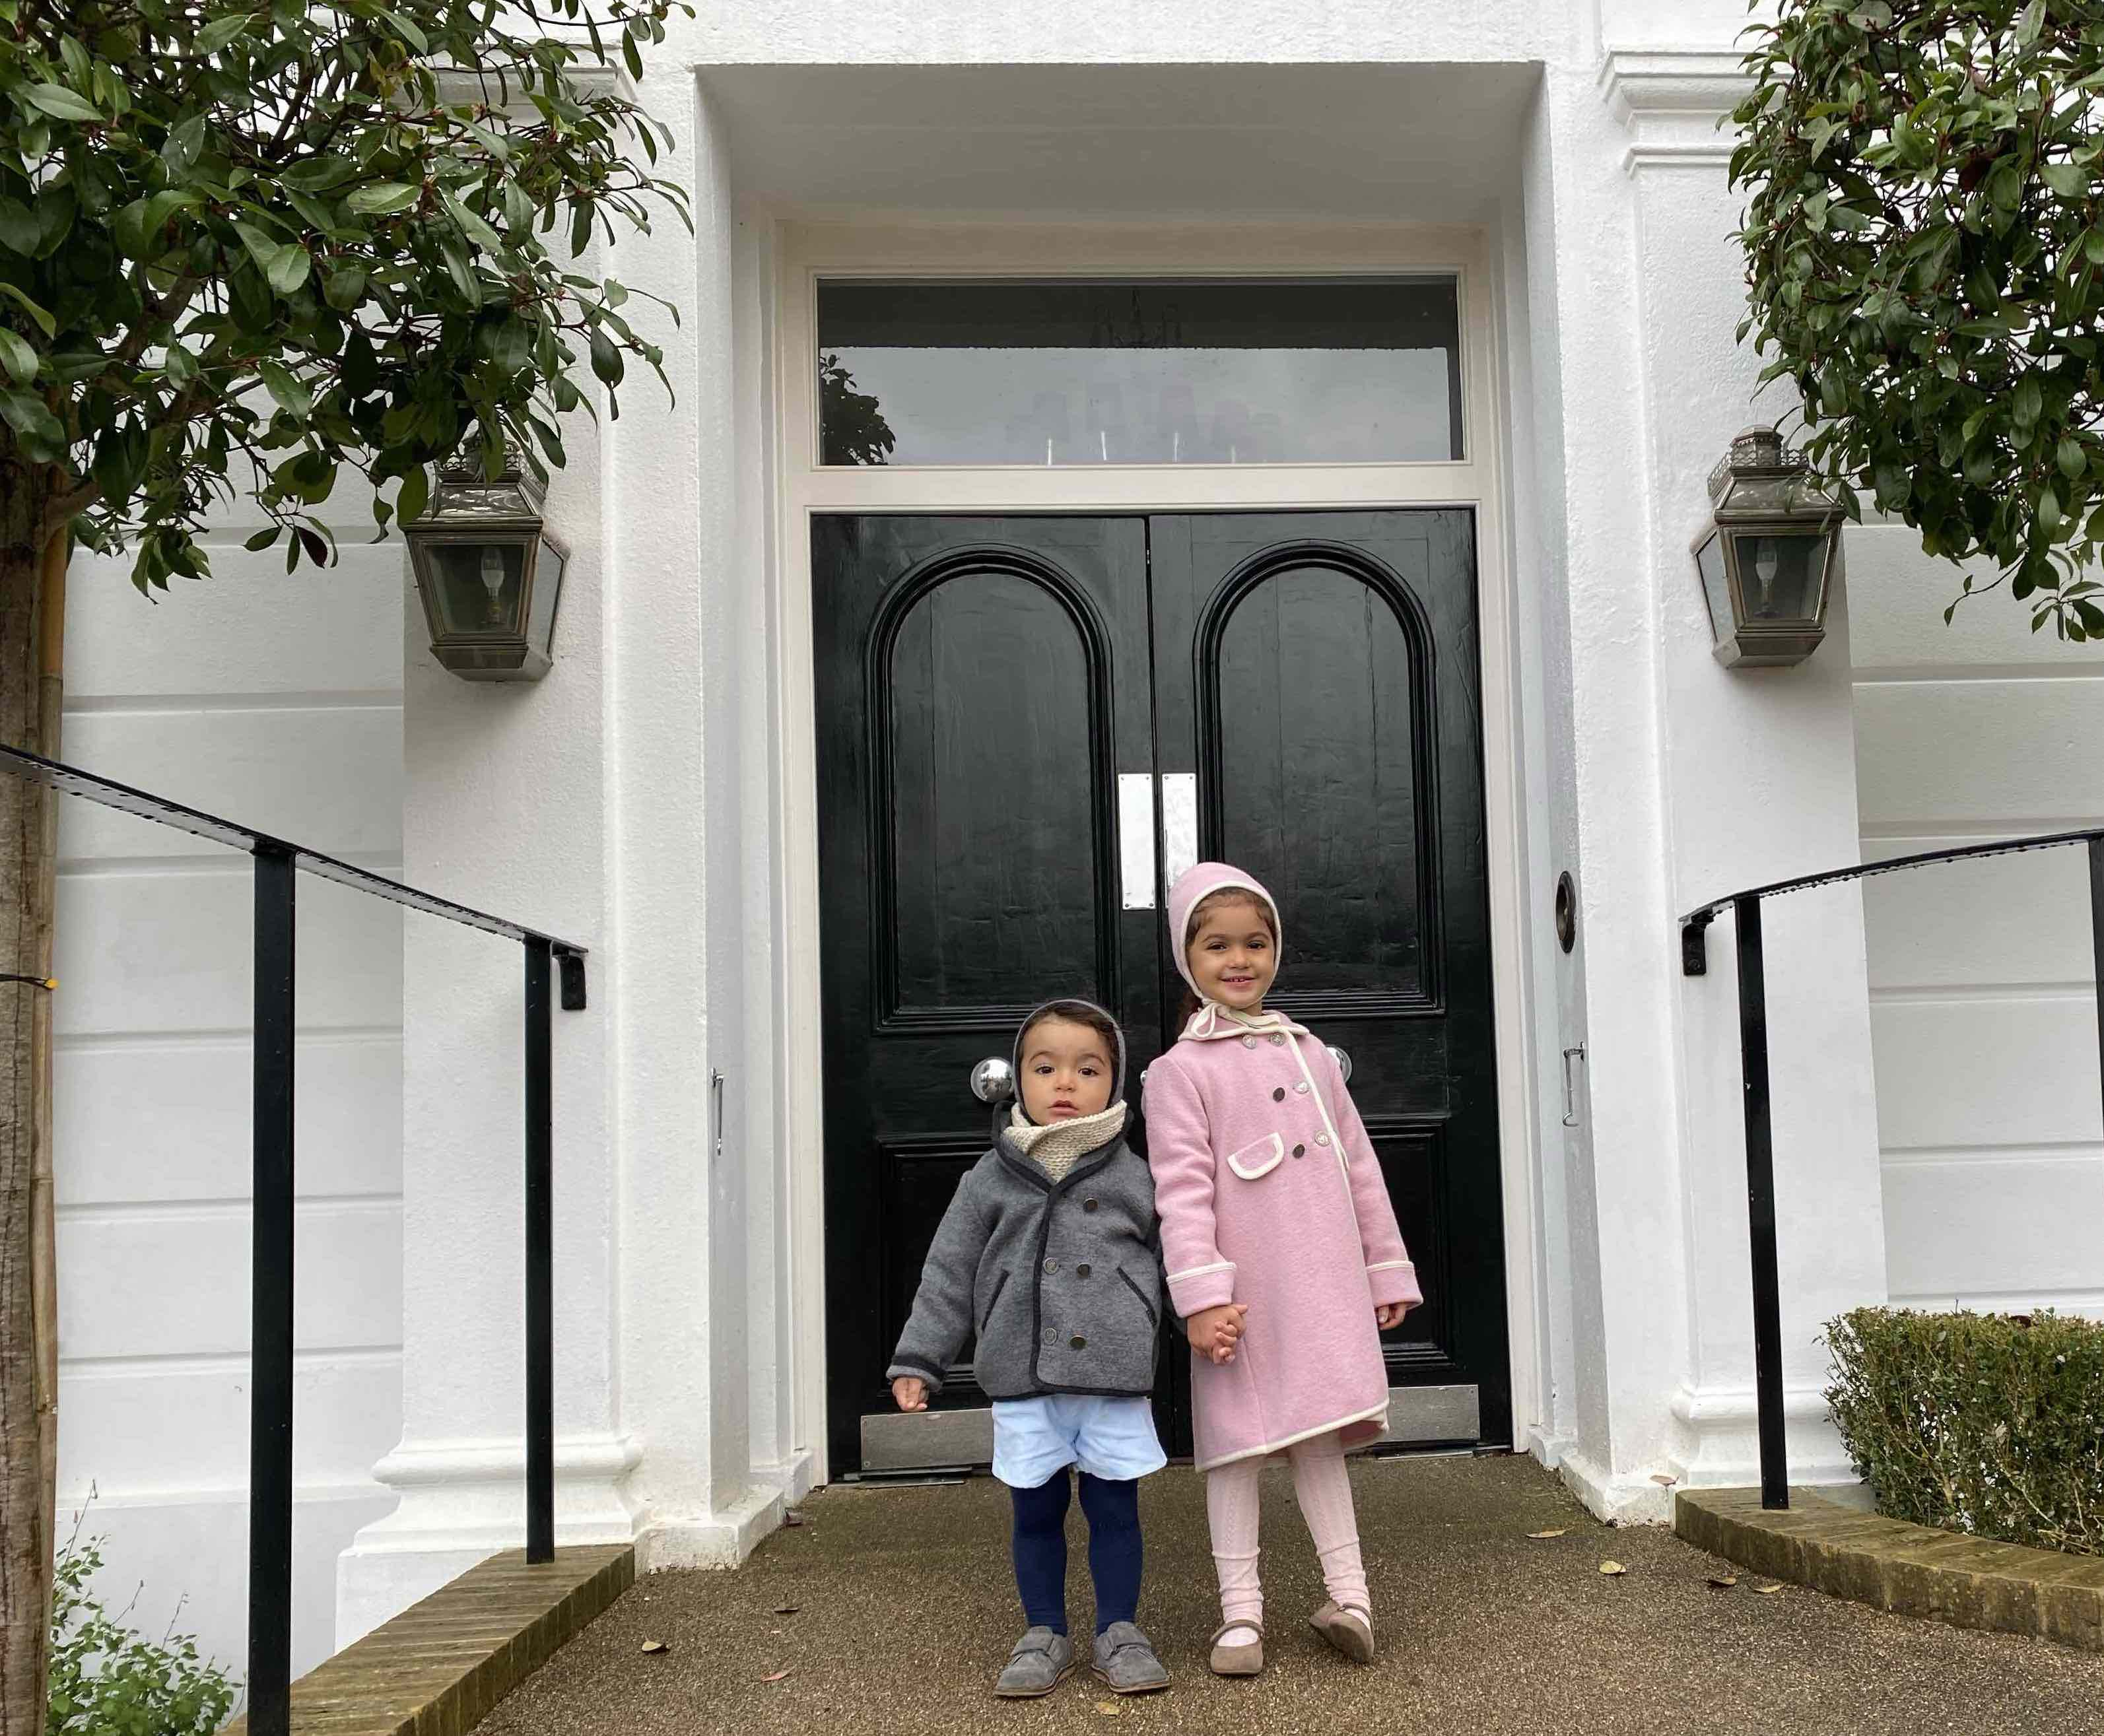 Marae warm winter coats for boys and girls Charlotte sy Dimby